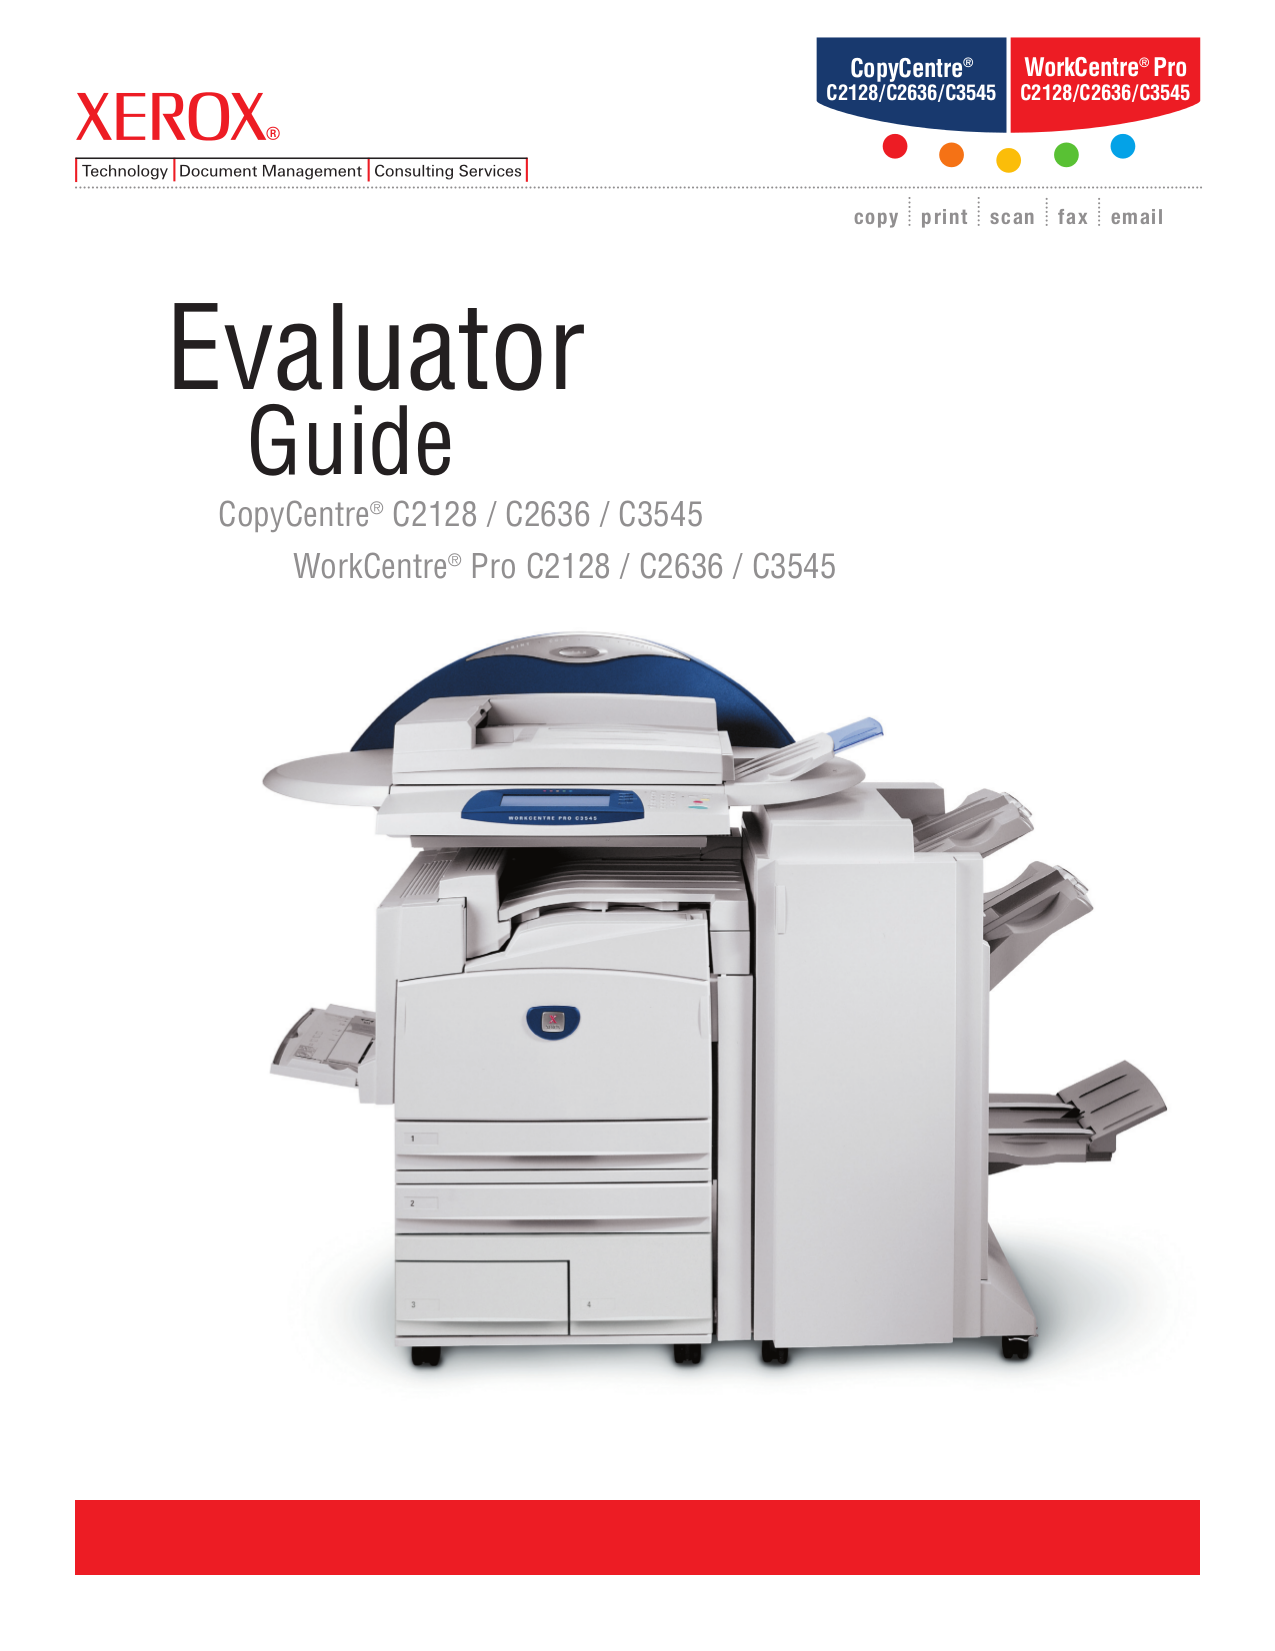 download free pdf for xerox workcentre pro c2128 multifunction rh umlib com Xerox WorkCentre 7845 xerox workcentre pro c2128 service manual